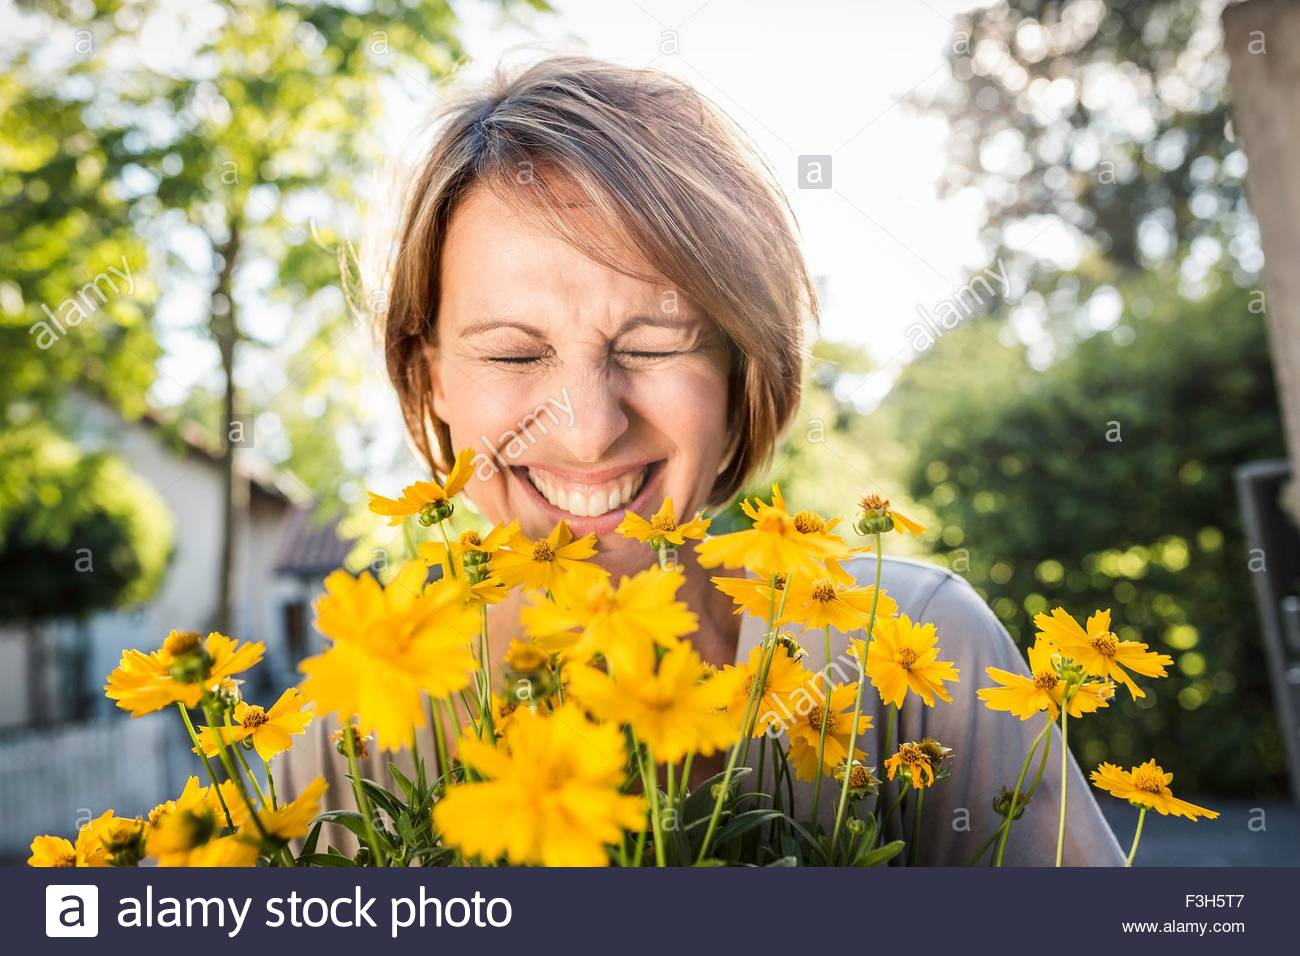 Portrait of mature woman with yellow flowers - Stock Image